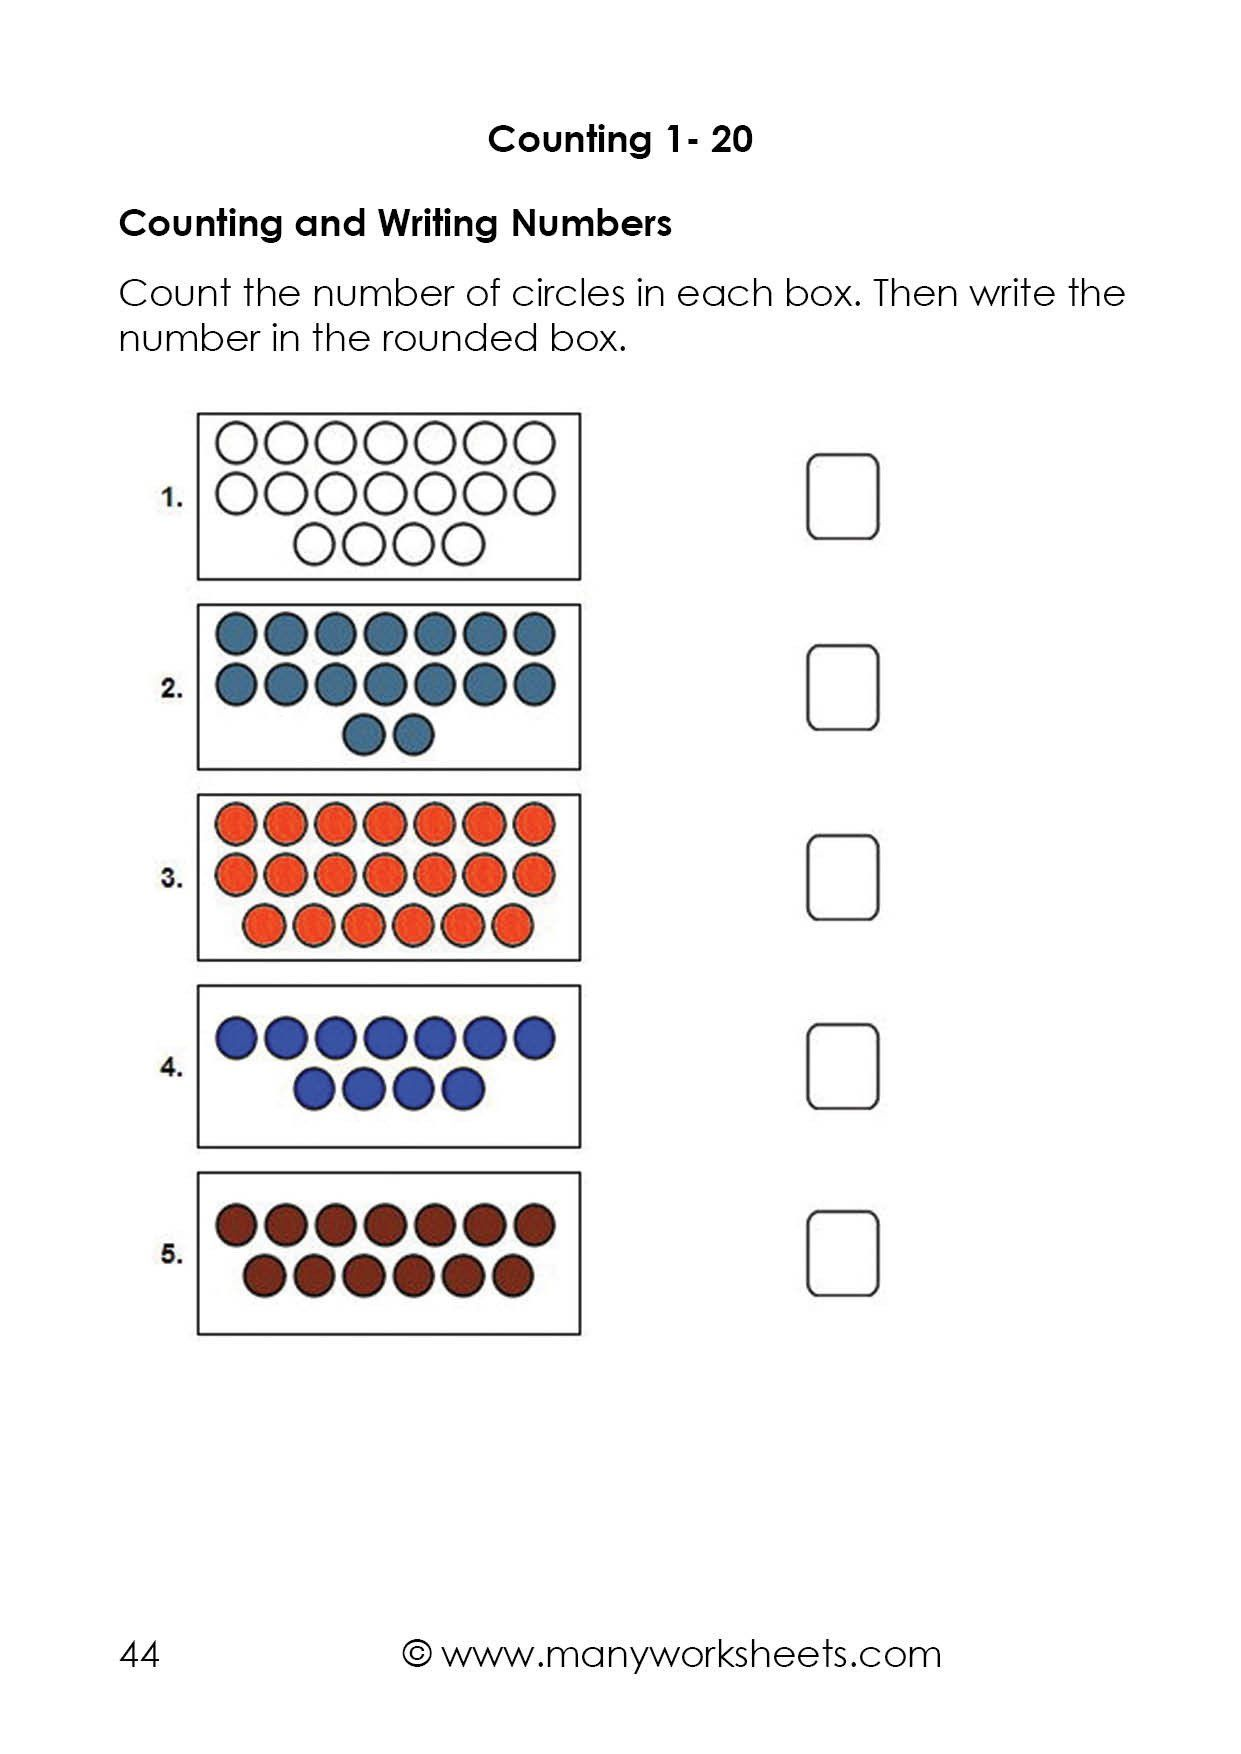 Writing Numbers To 20 Worksheets Counting Dots To 20 And